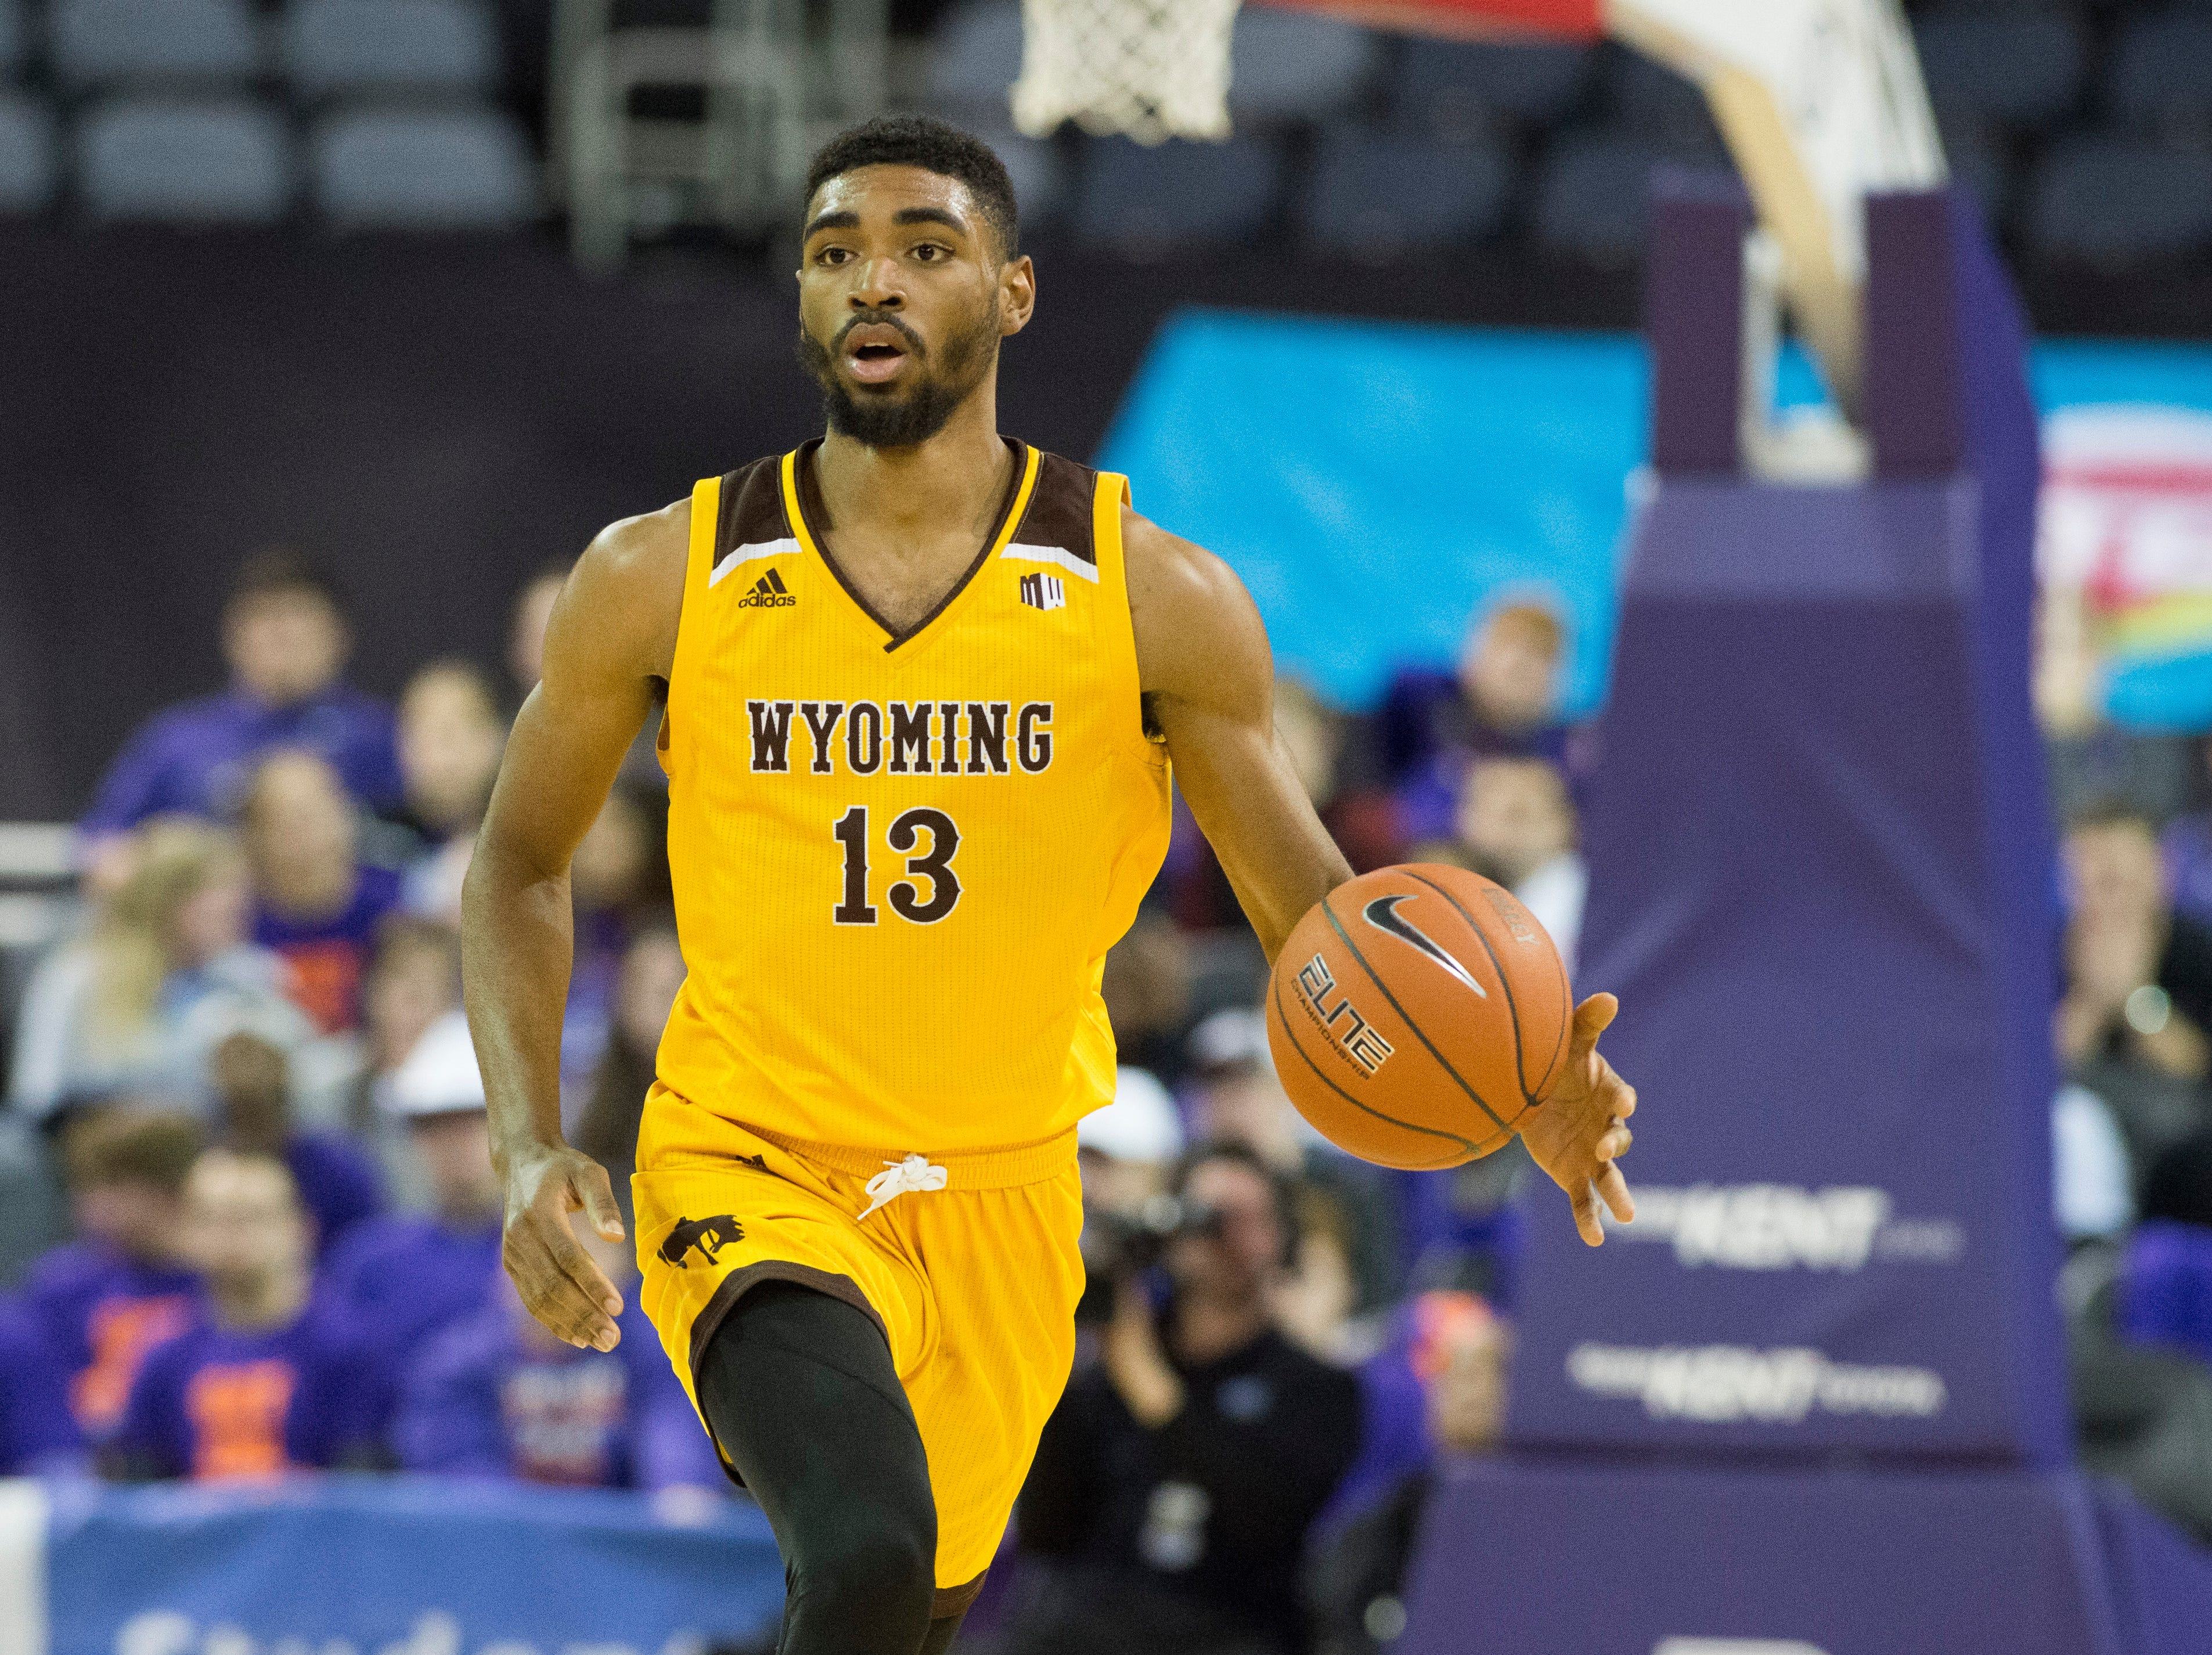 """Wyoming's Trevon """"TJ"""" Taylor (13) eyes the court as he dribbles the ball during the UE vs Wyoming game at the Ford Center Wednesday, Nov. 28, 2018. UE won 86-76."""